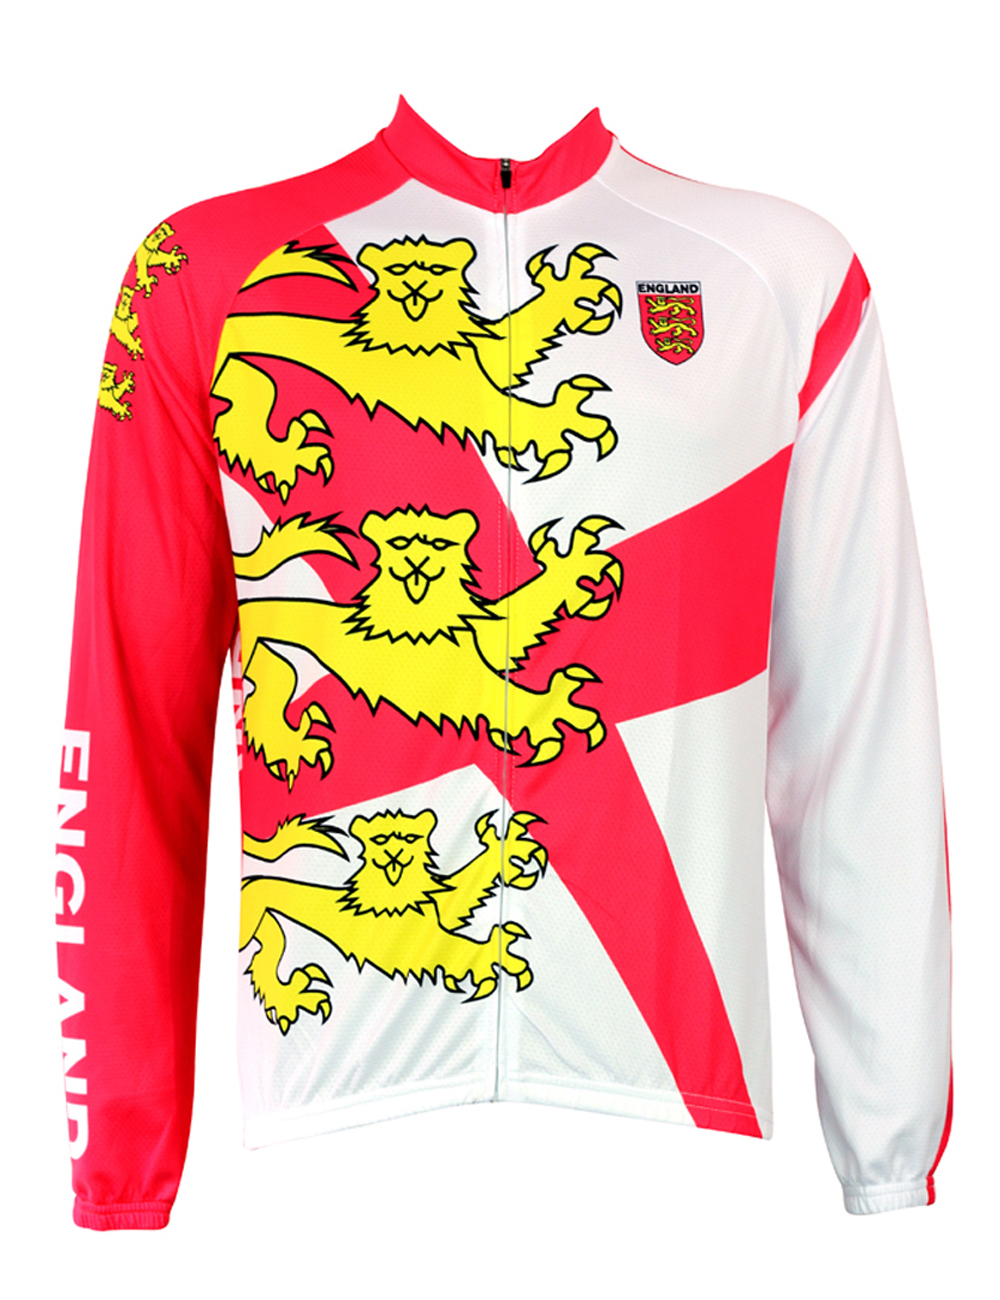 Three Lions Cycling shirt bike equipment Mens Long Sleeve Cycling Jersey Cycling Clothing Bike Shirt Size 2XS To 6XL ILPALADIN new 17 black red spider mens breathable bike clothing polyester autumn long sleeve cycling jerseys size 2xs to 6xl